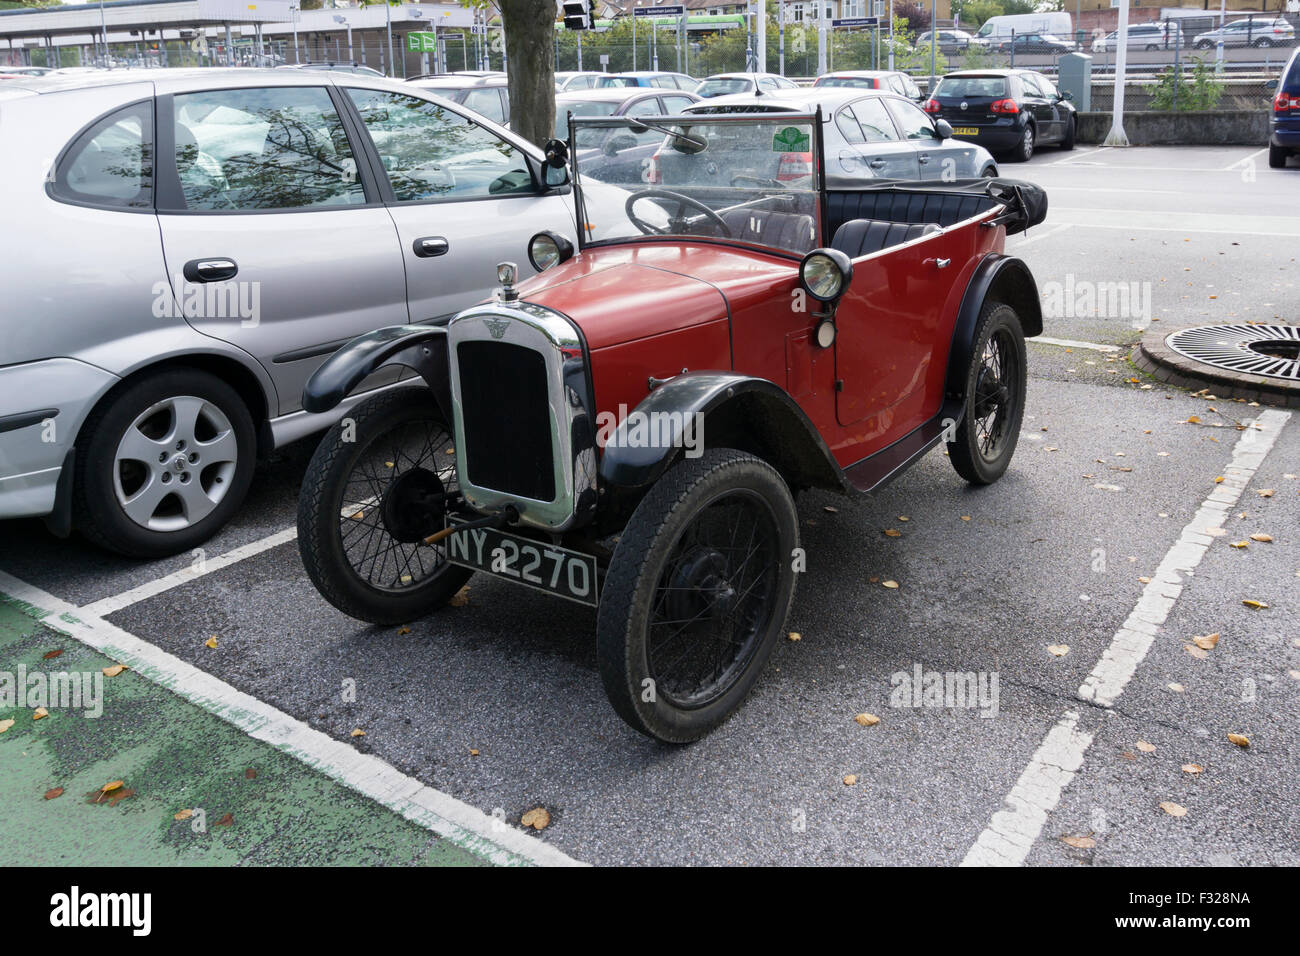 A small vintage Austin 7 car in a car park with larger modern saloon ...